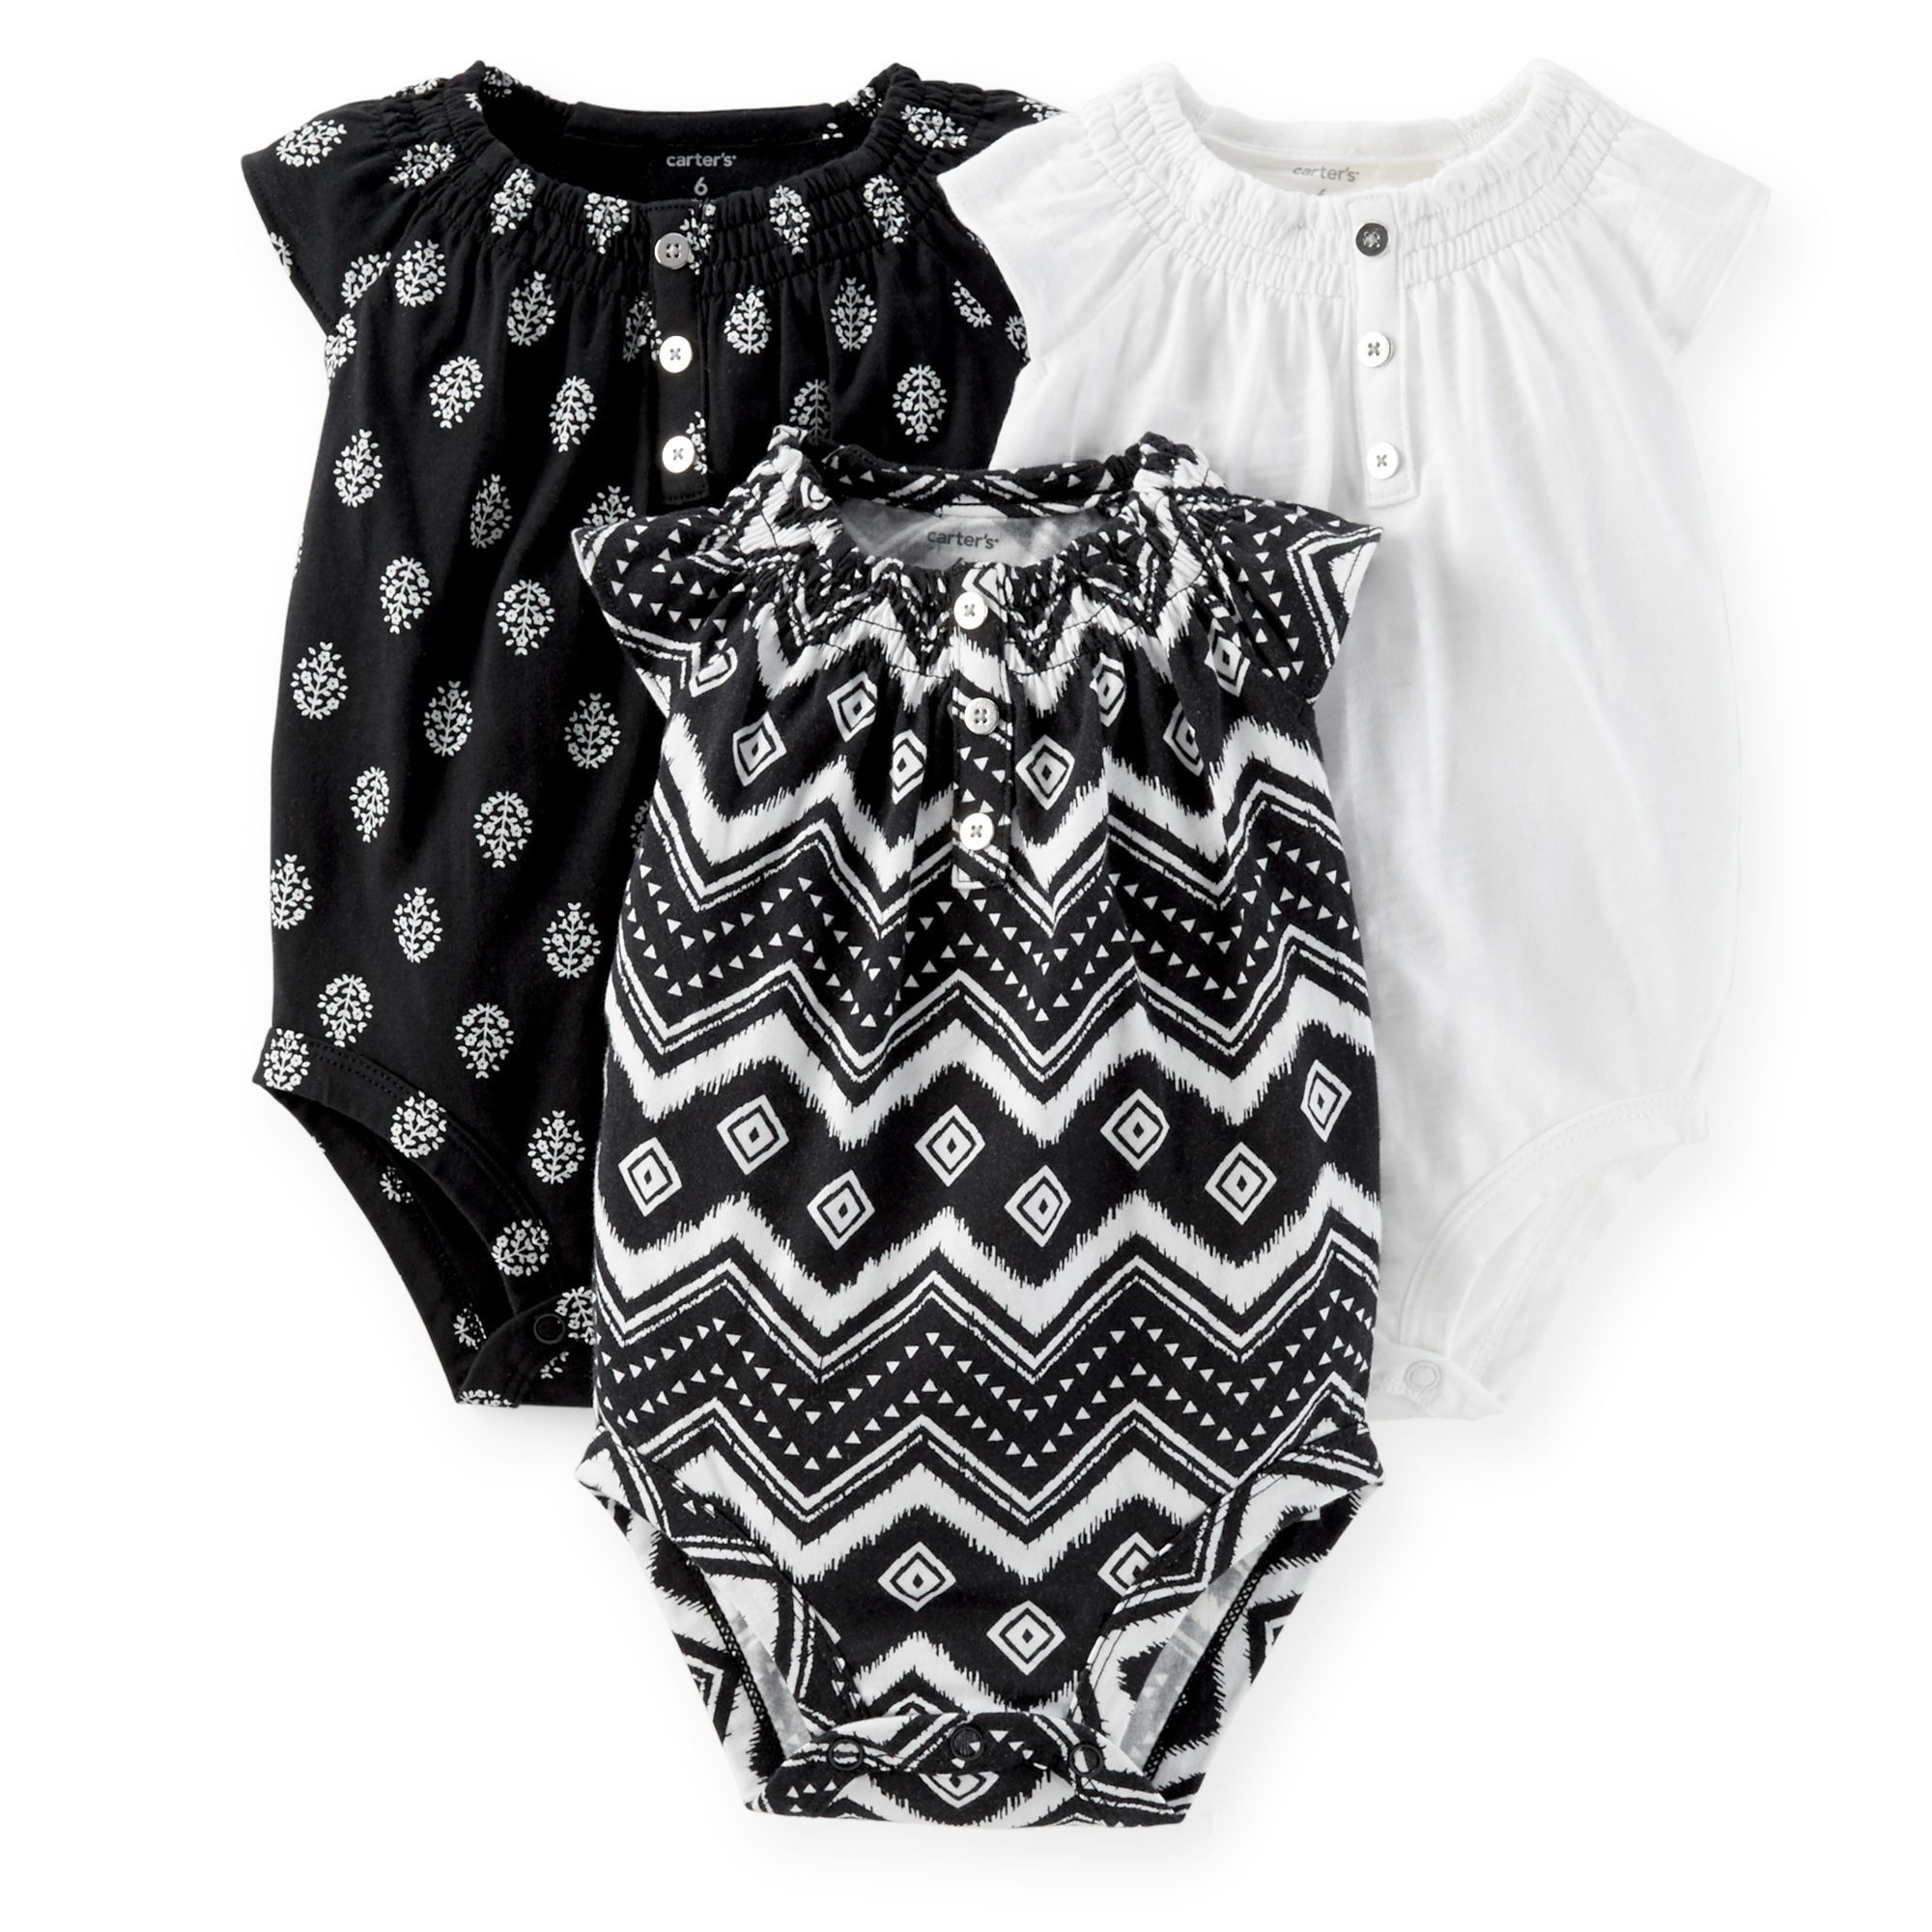 3 Pack Ruffle Sleeve Bodysuits Carters black and white